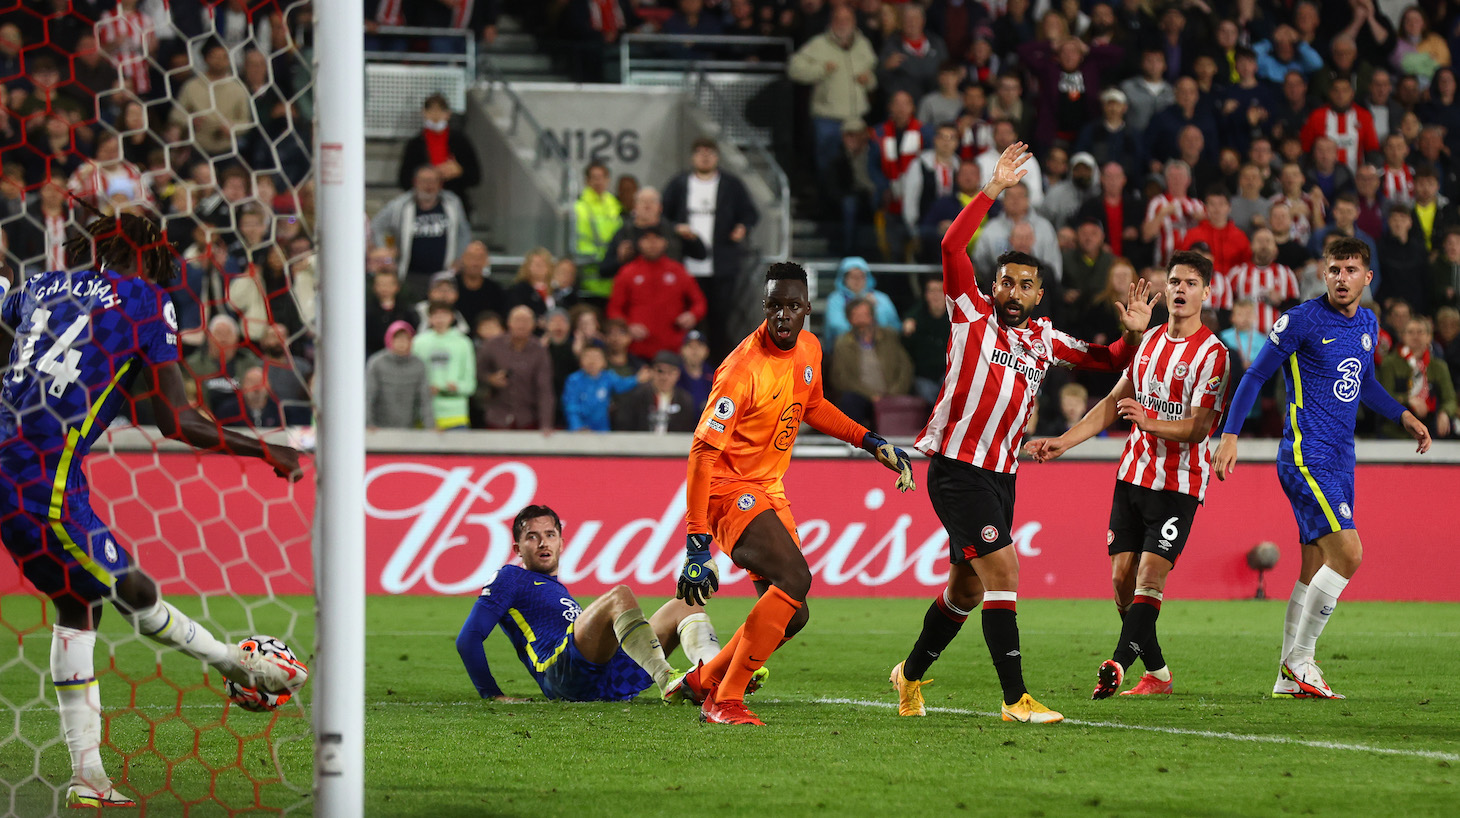 Trevoh Chalobah of Chelsea clears the ball off the line to prevent a goal during the Premier League match between Brentford and Chelsea at Brentford Community Stadium on October 16, 2021 in Brentford, England.